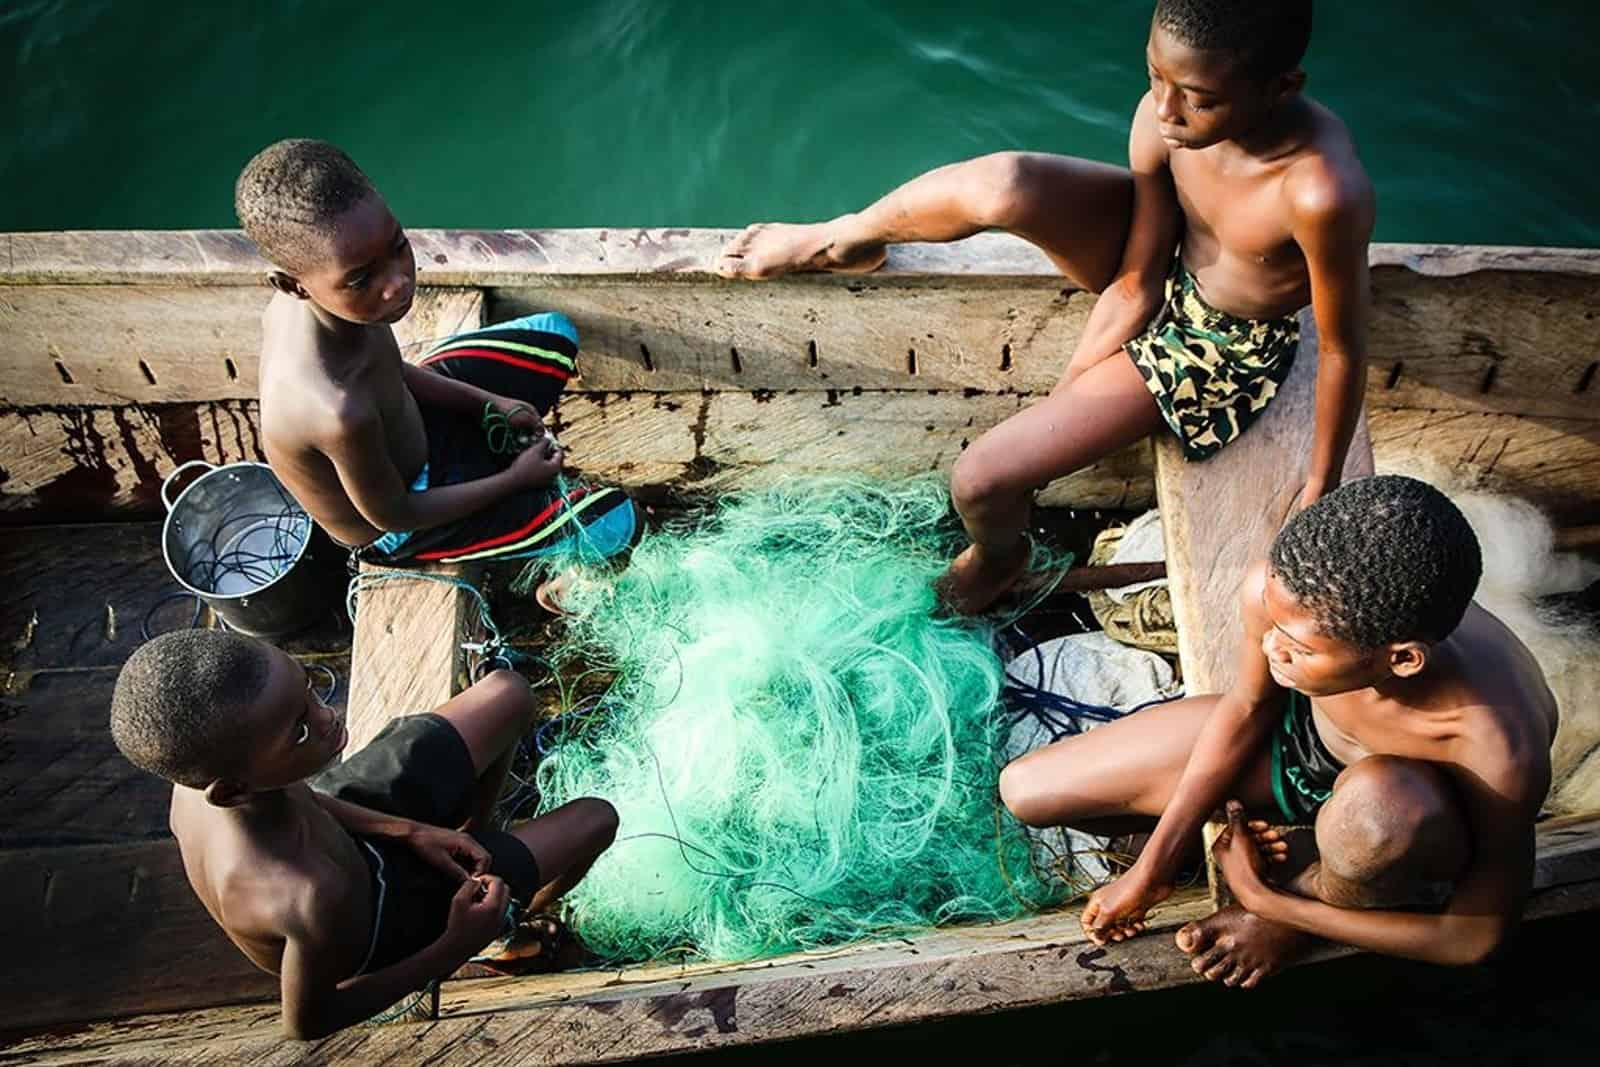 Four Ghanaian boys sit in a wooden fishing boat with green fishing net by their feet